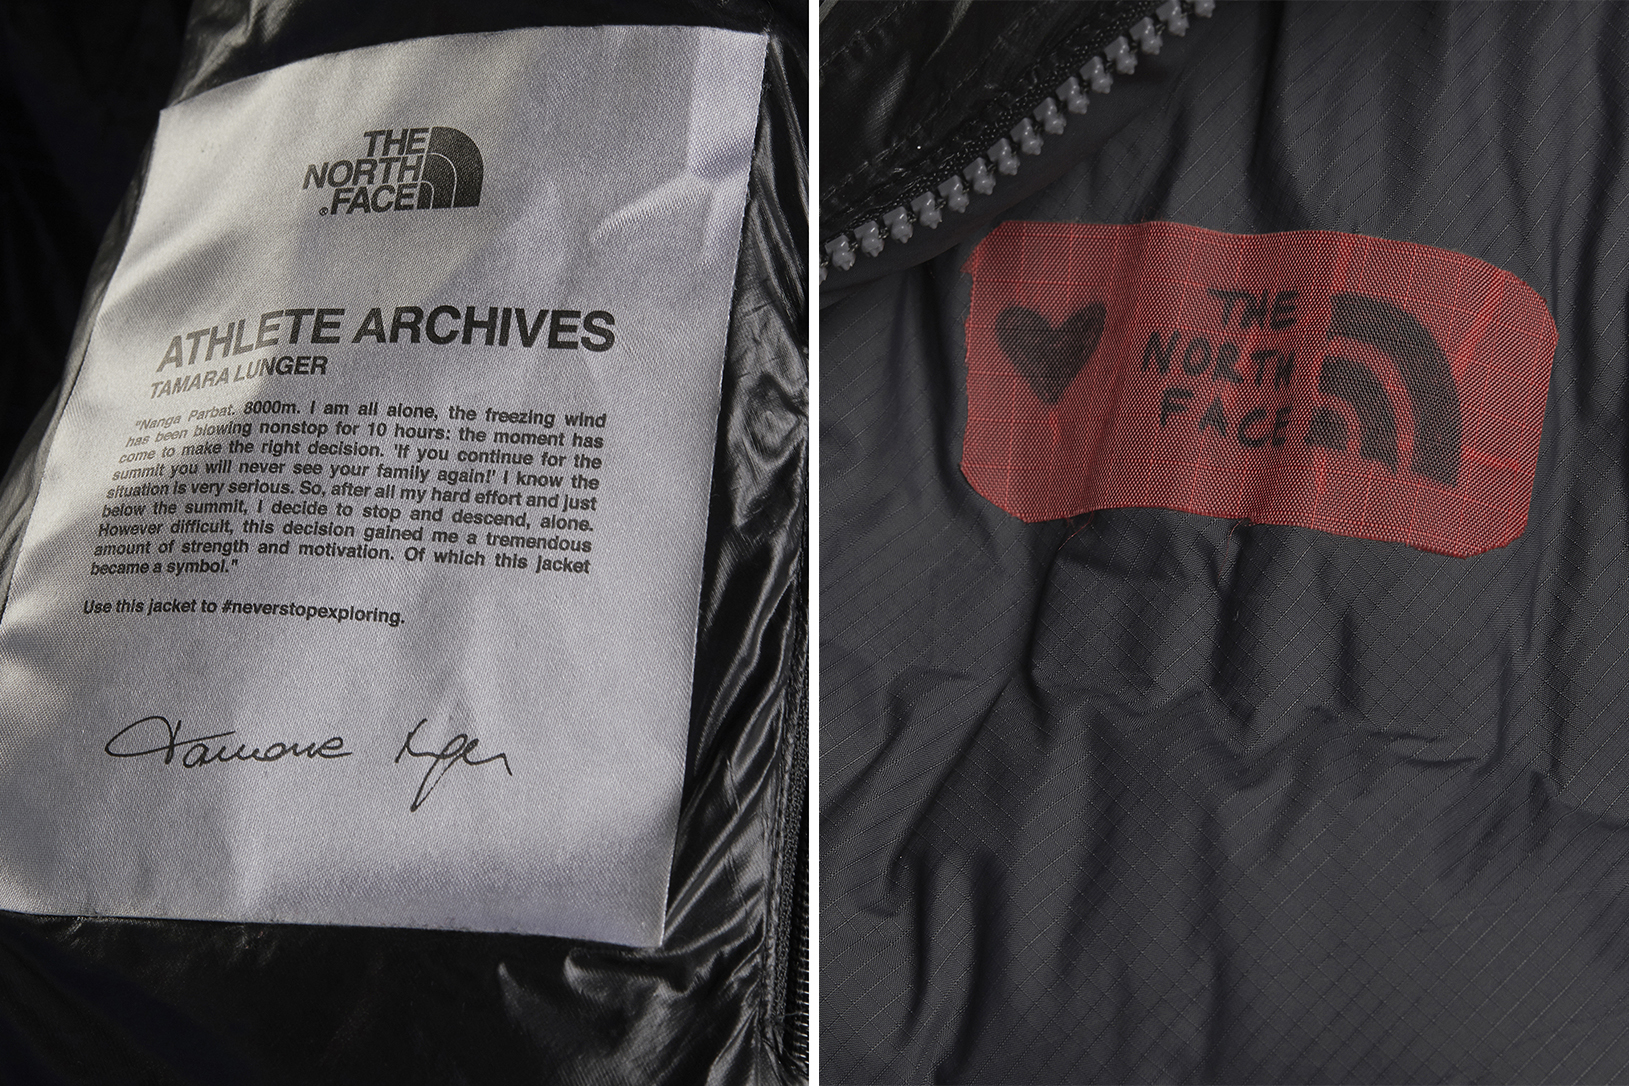 The North Face Celebrates Its Heritage With The Pinnacle Archives